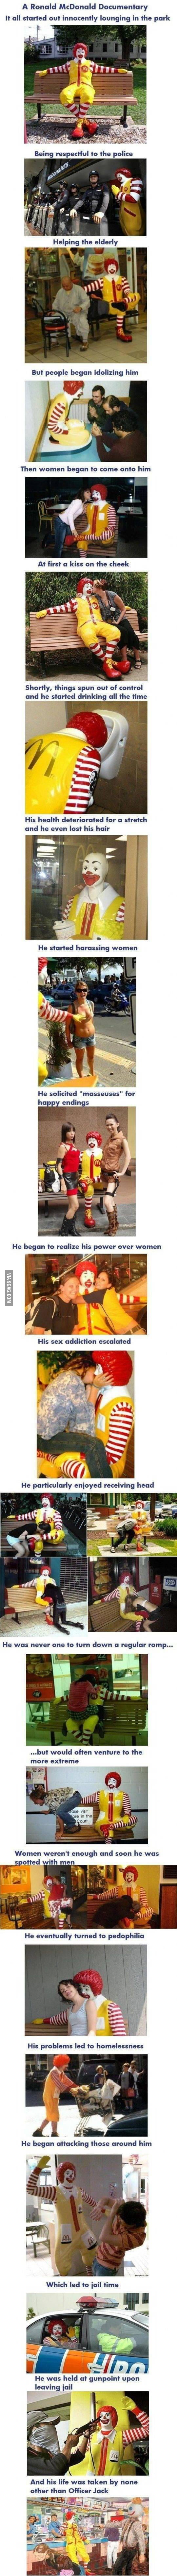 A Ronald McDonald documentary